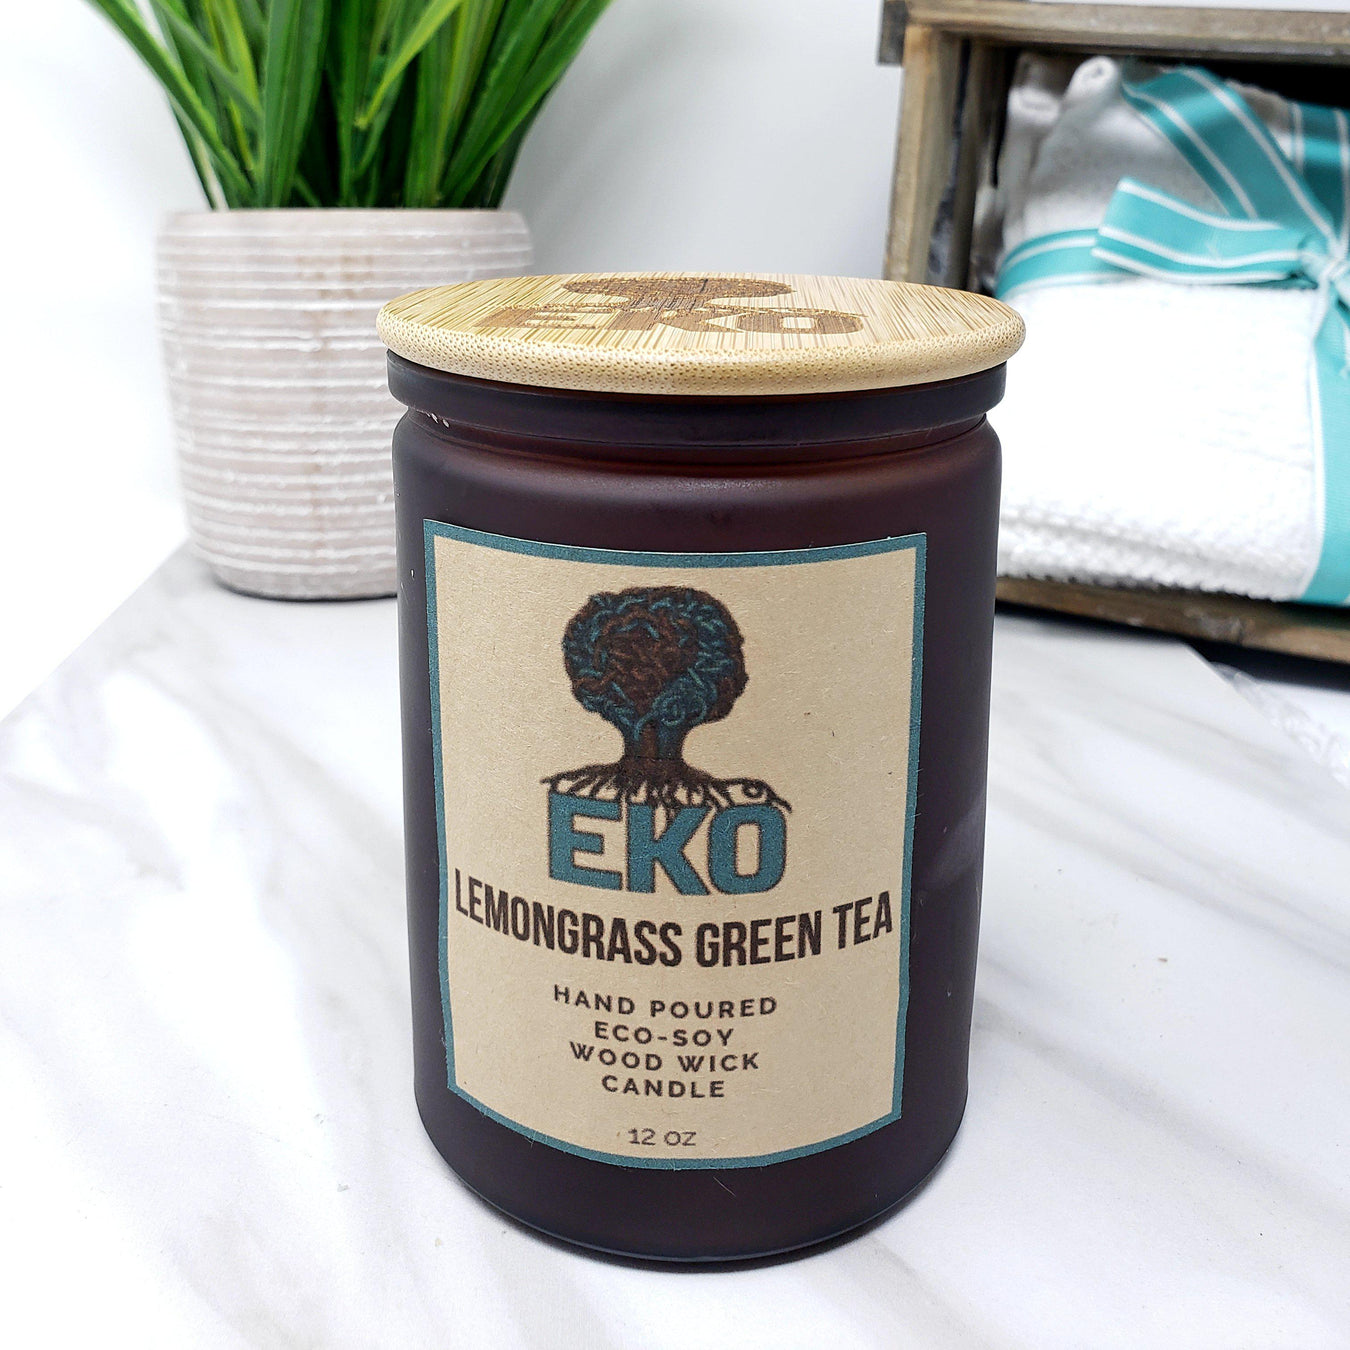 Hand Poured Eco-Soy Candles